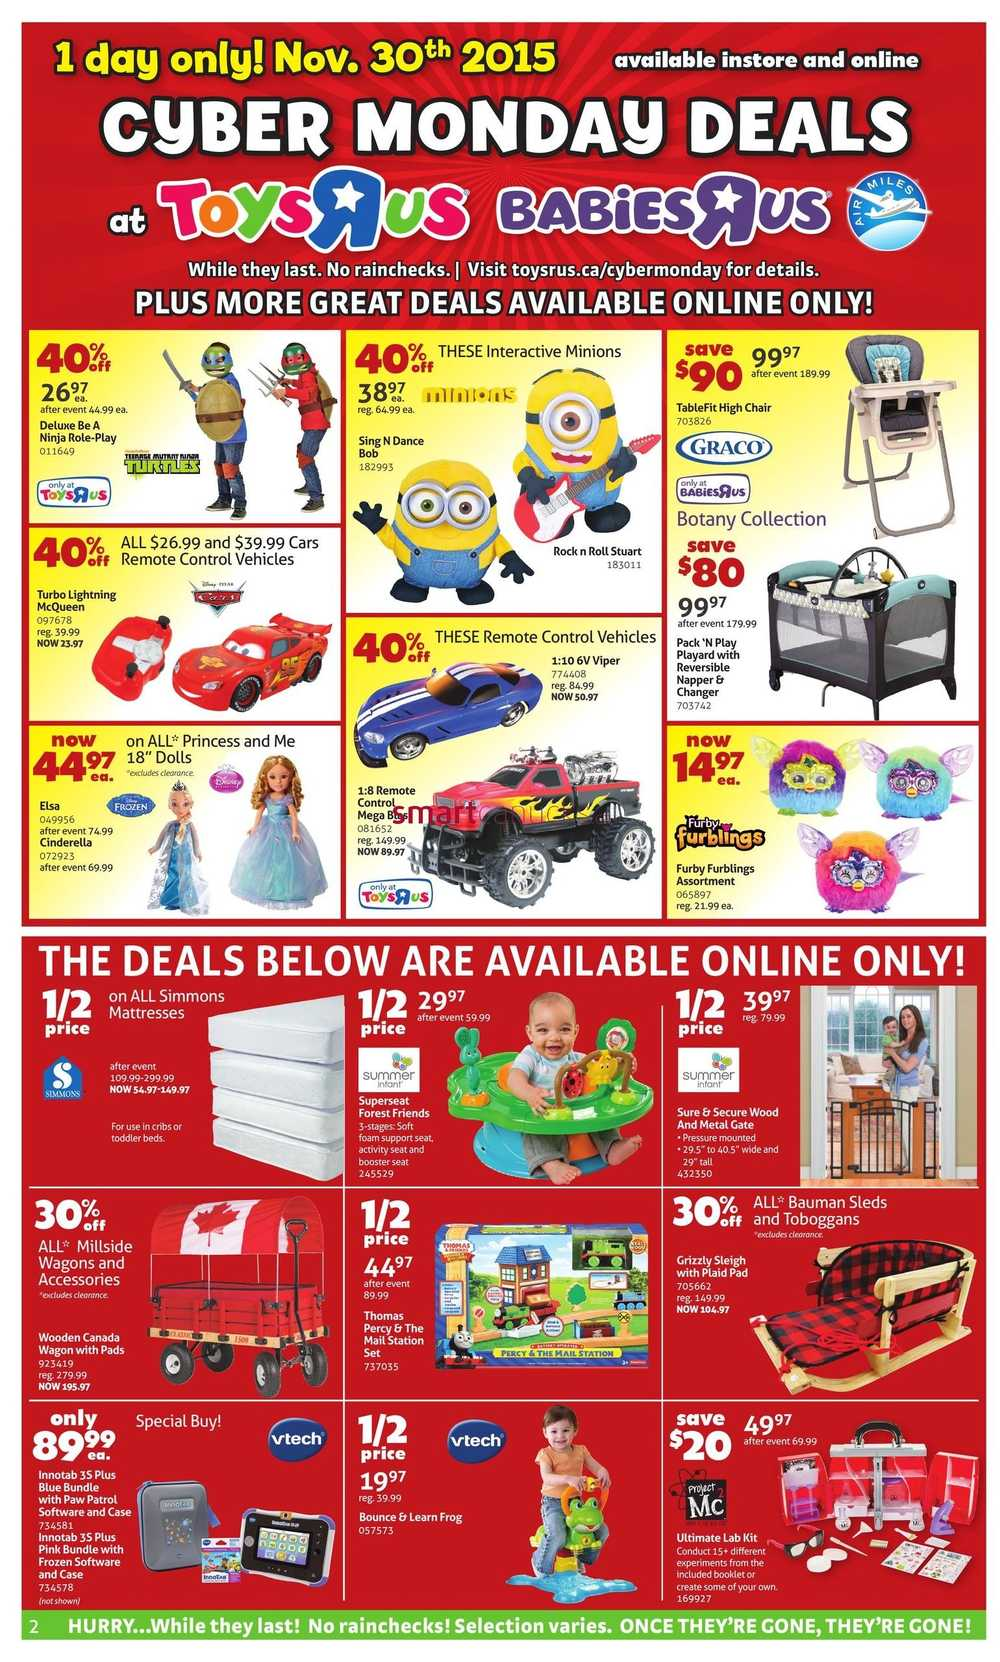 "Toys""R""Us is the place to go for Cyber Monday Deals While the holidays are not all about receiving, it is sure nice to have a list of gifts the kids are interested in and ."